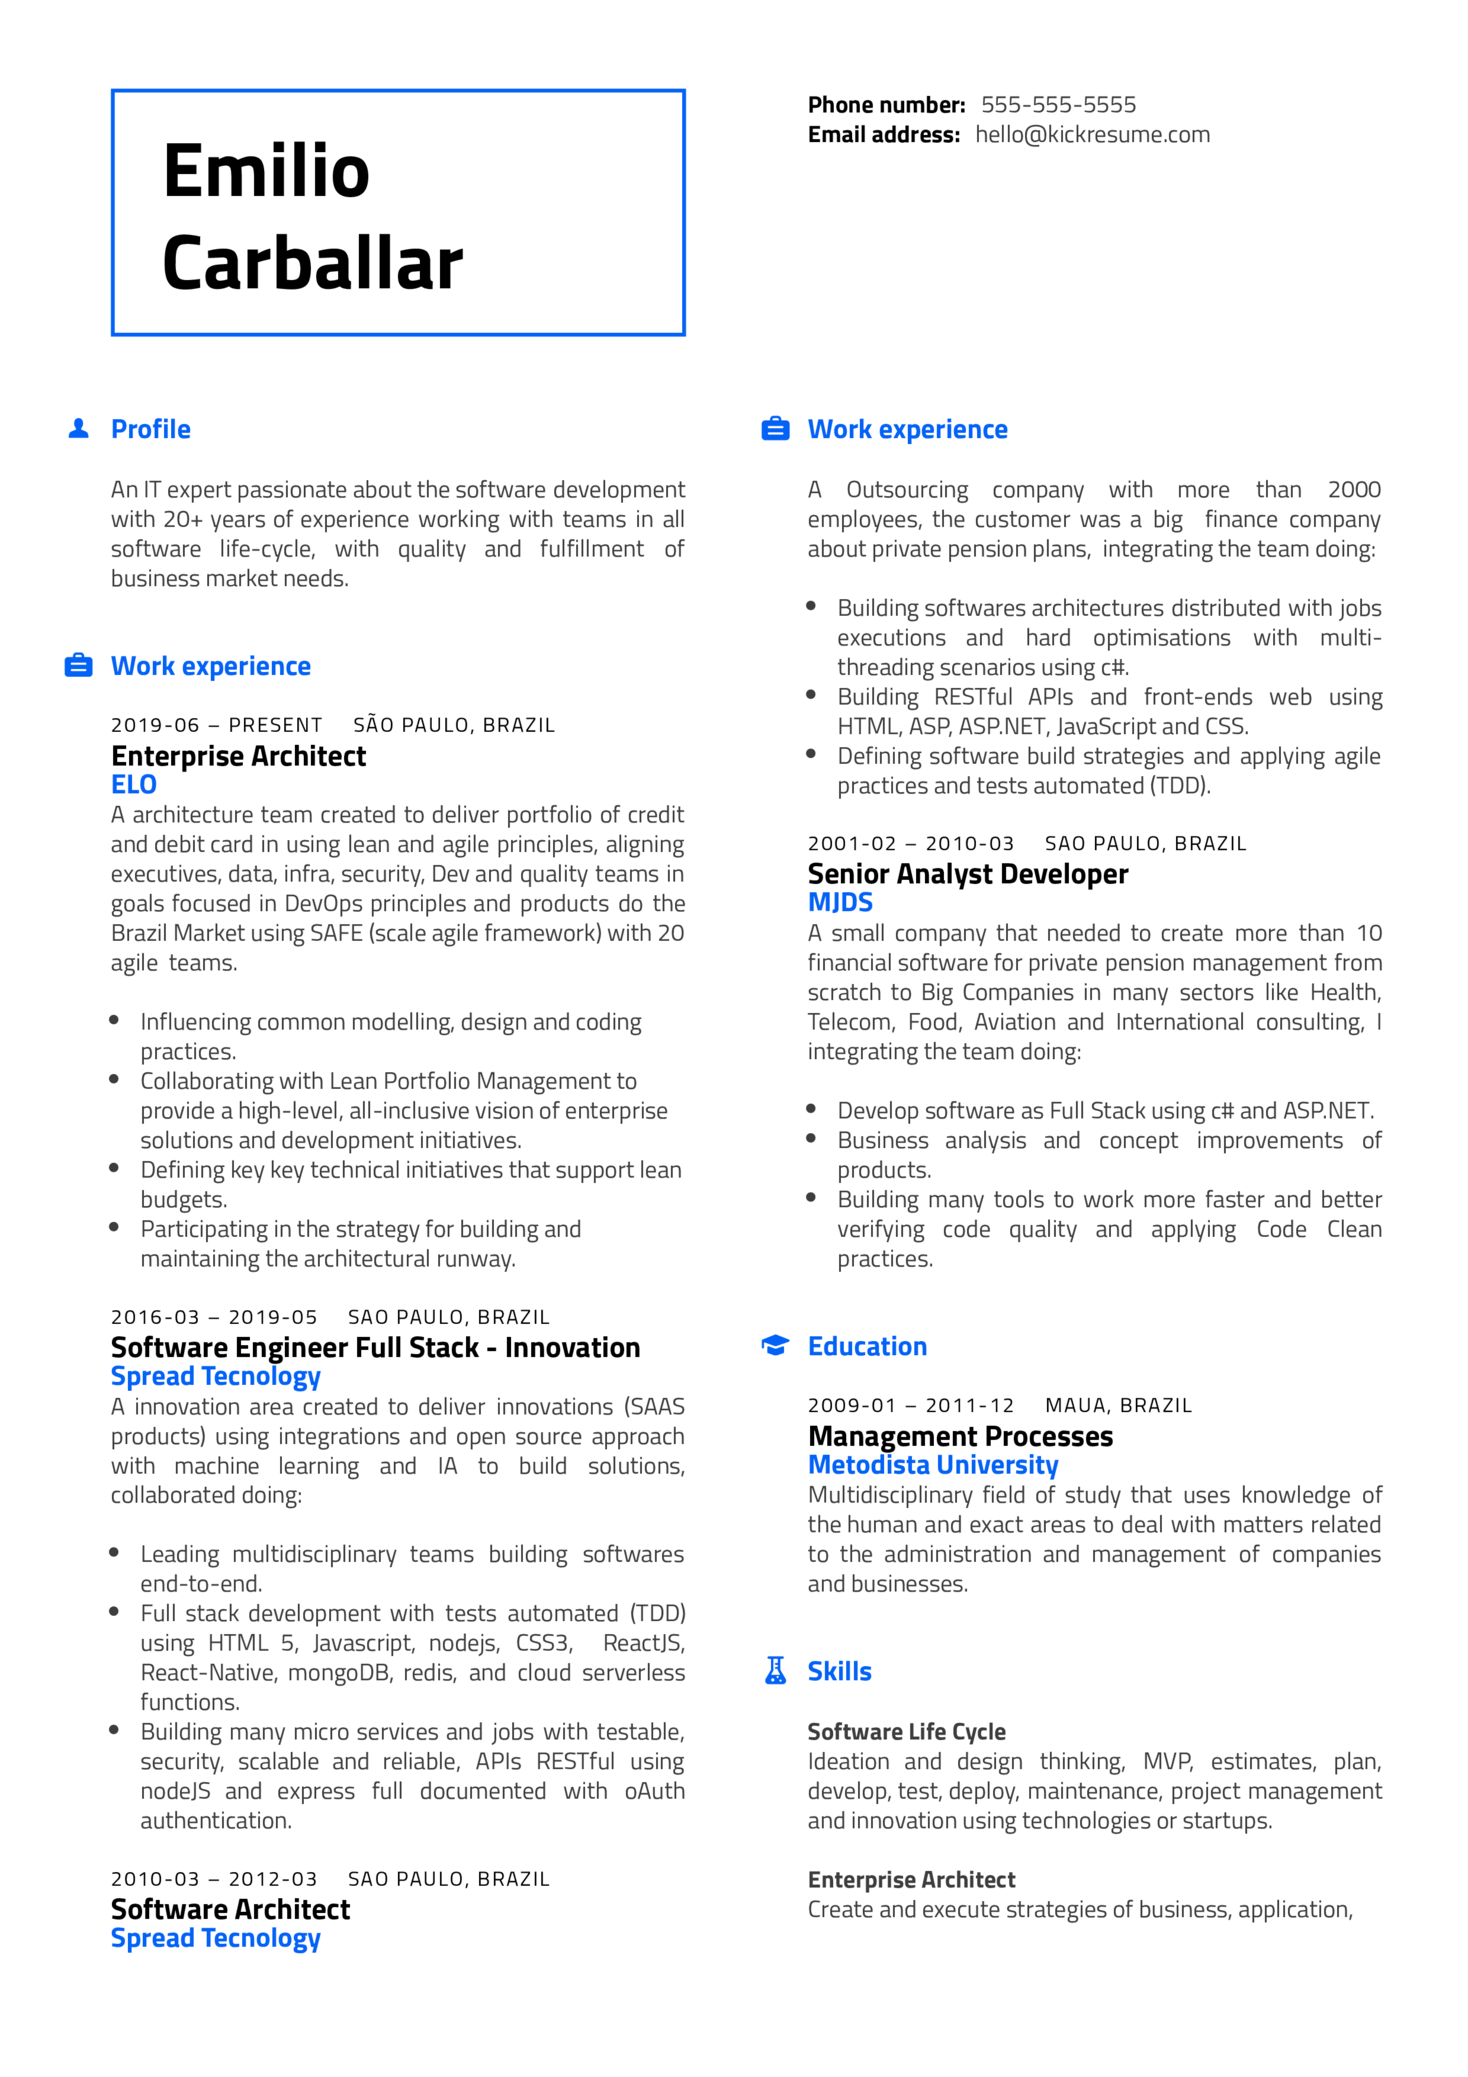 Amazon Web Services Senior Advisory Consultant Resume Example (Part 1)